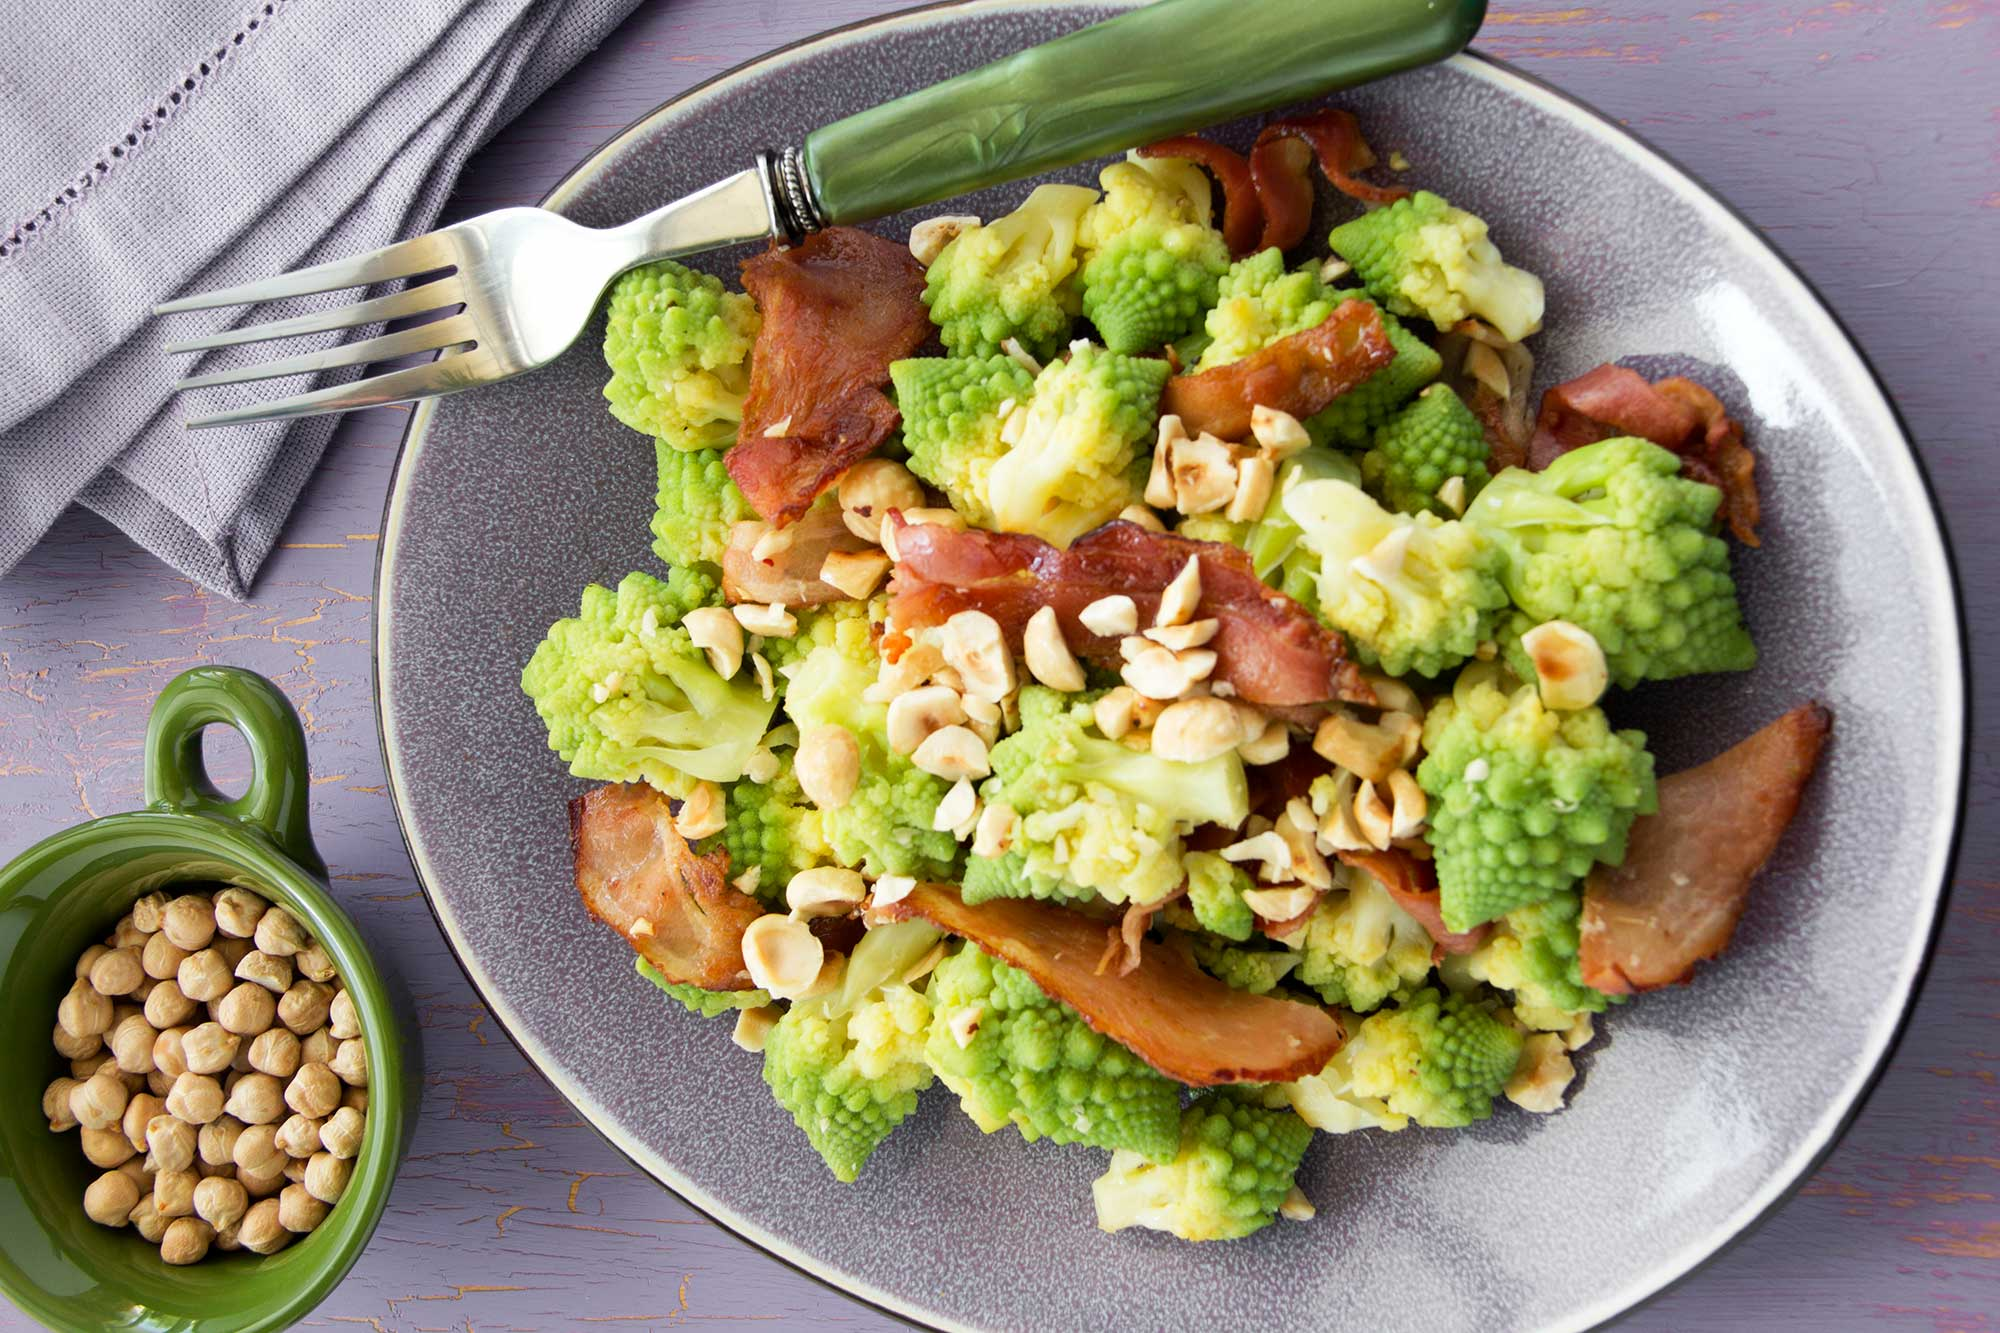 Romanesco Salad with Bacon and Hazelnuts